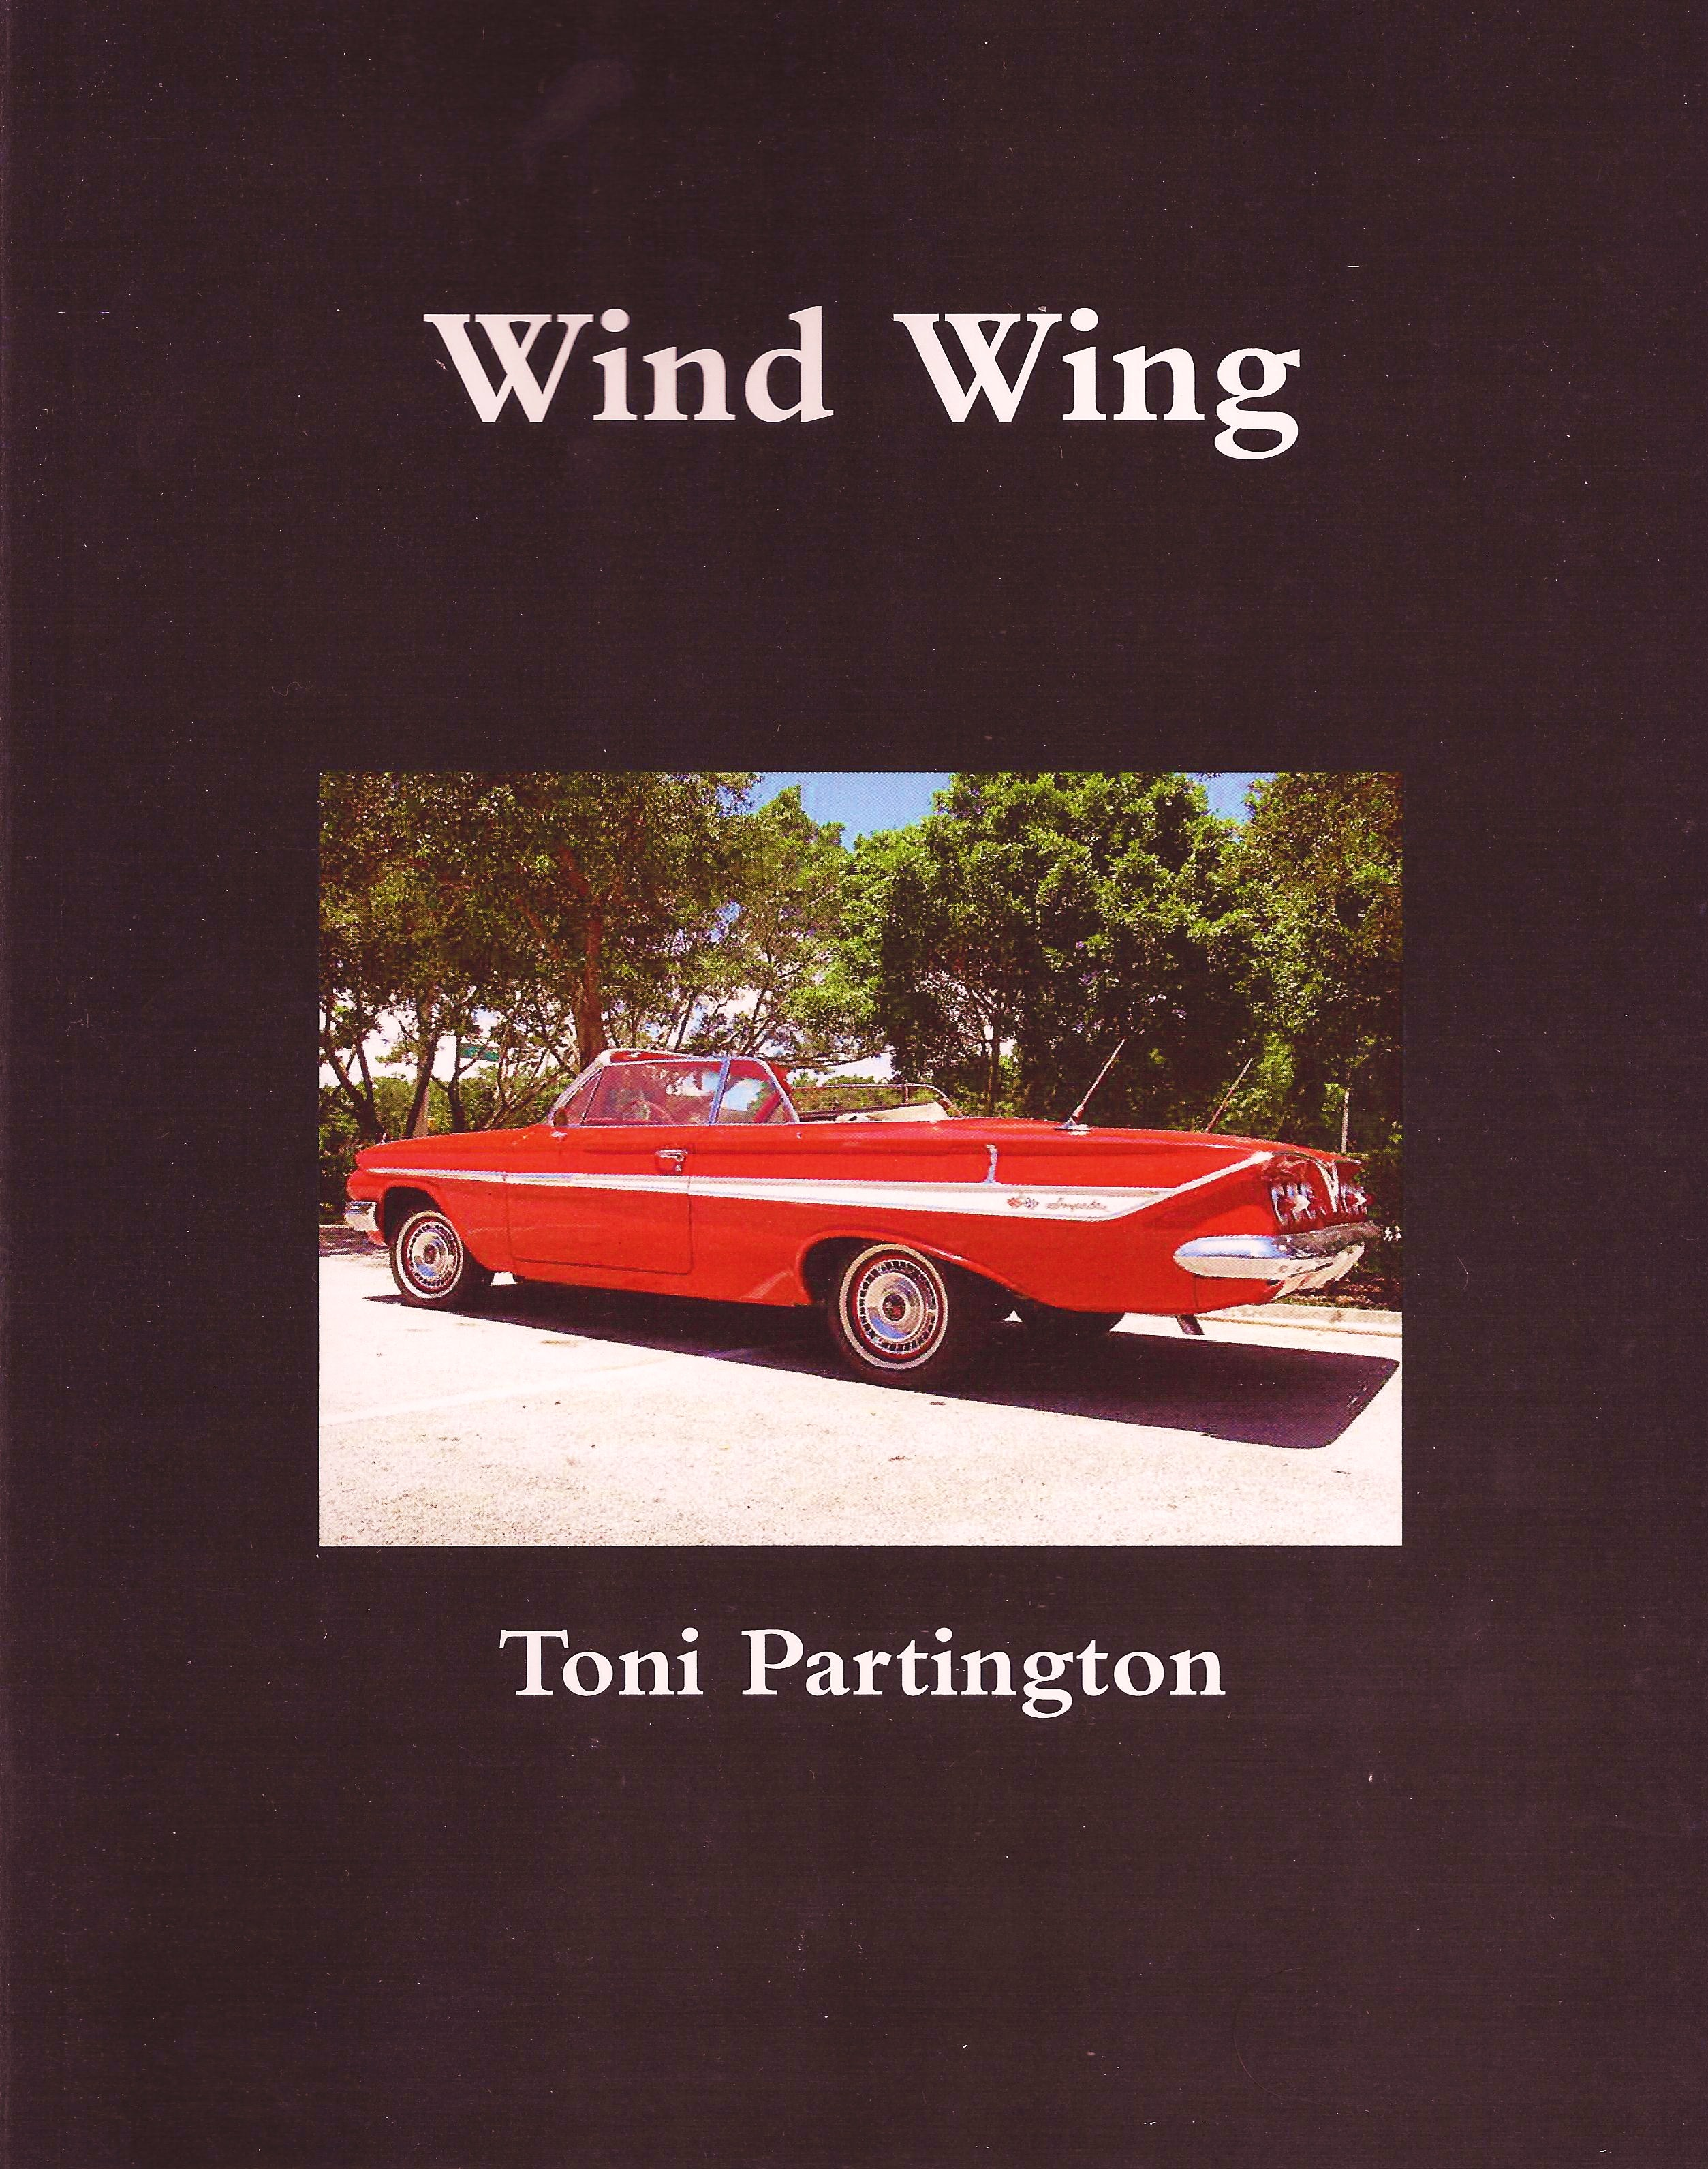 Here Is What Some Of Toni's Fellow Poets Had To Say About The Book: